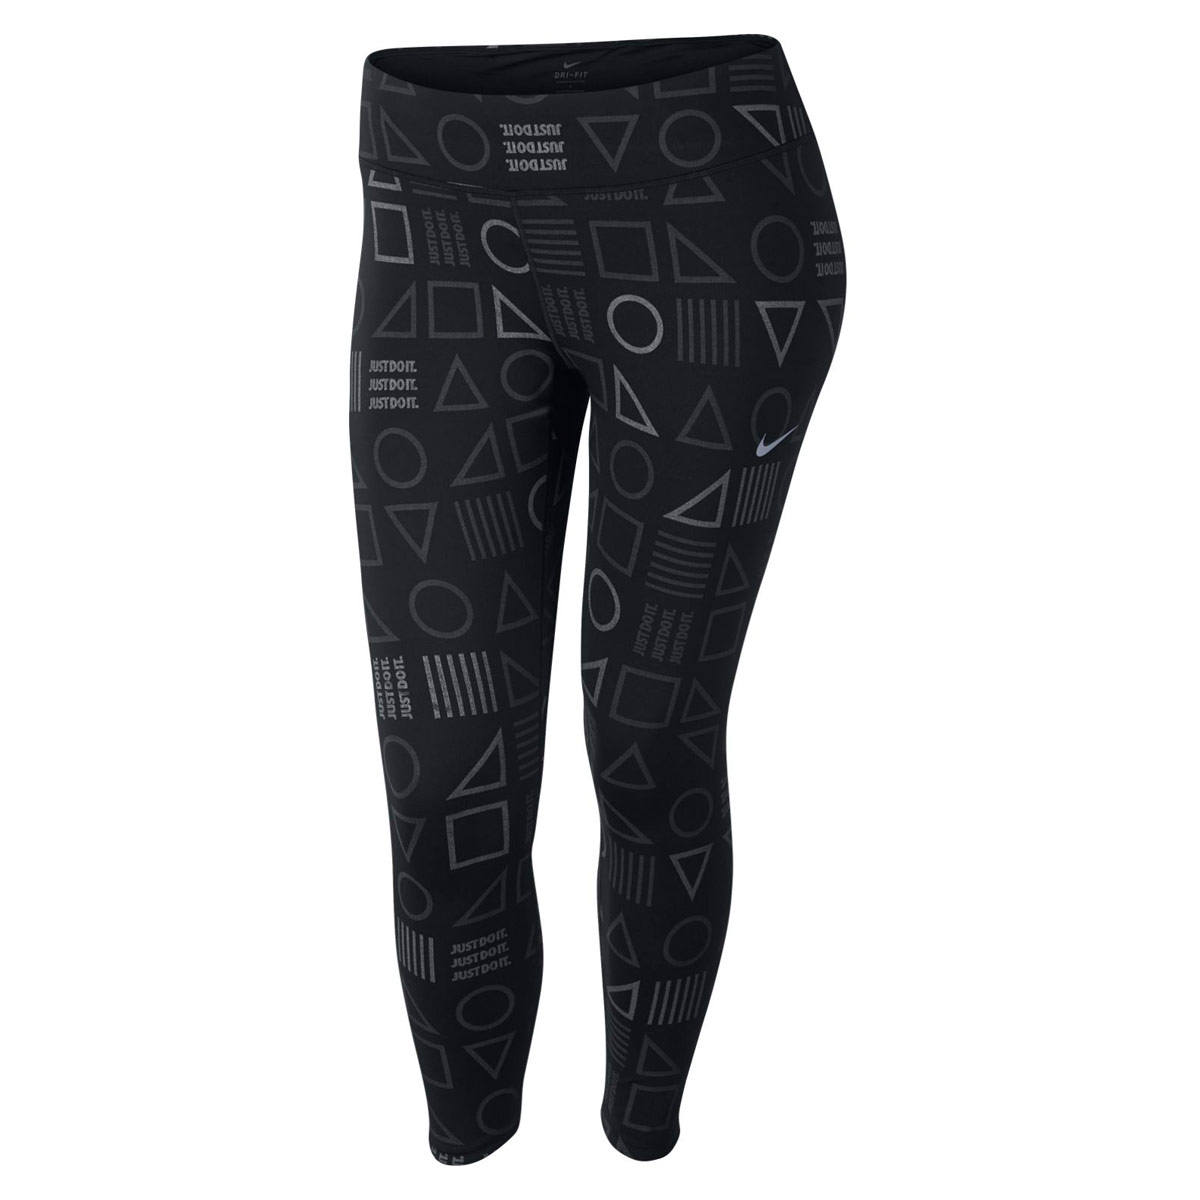 new products e1ce1 5ad80 Nike Epic Lux Running Tights - Running trousers for Women - Black   21RUN